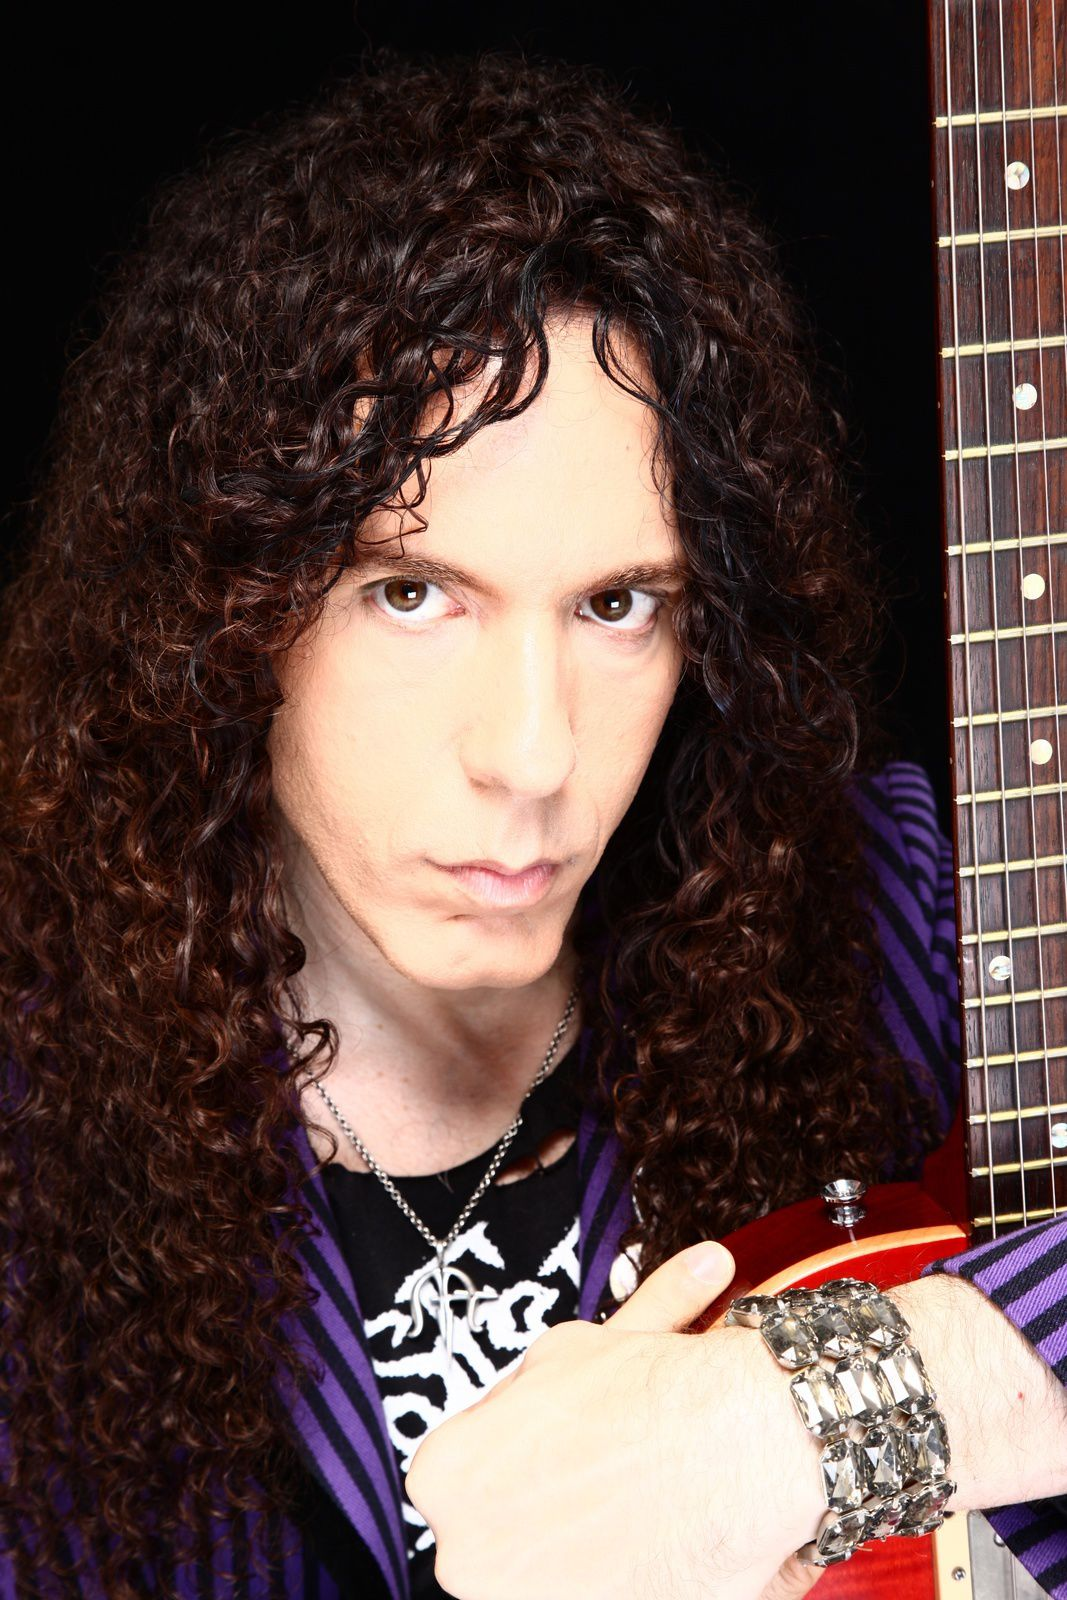 Marty Friedman, lead guitarist of Megadeth from 1990 to 2000